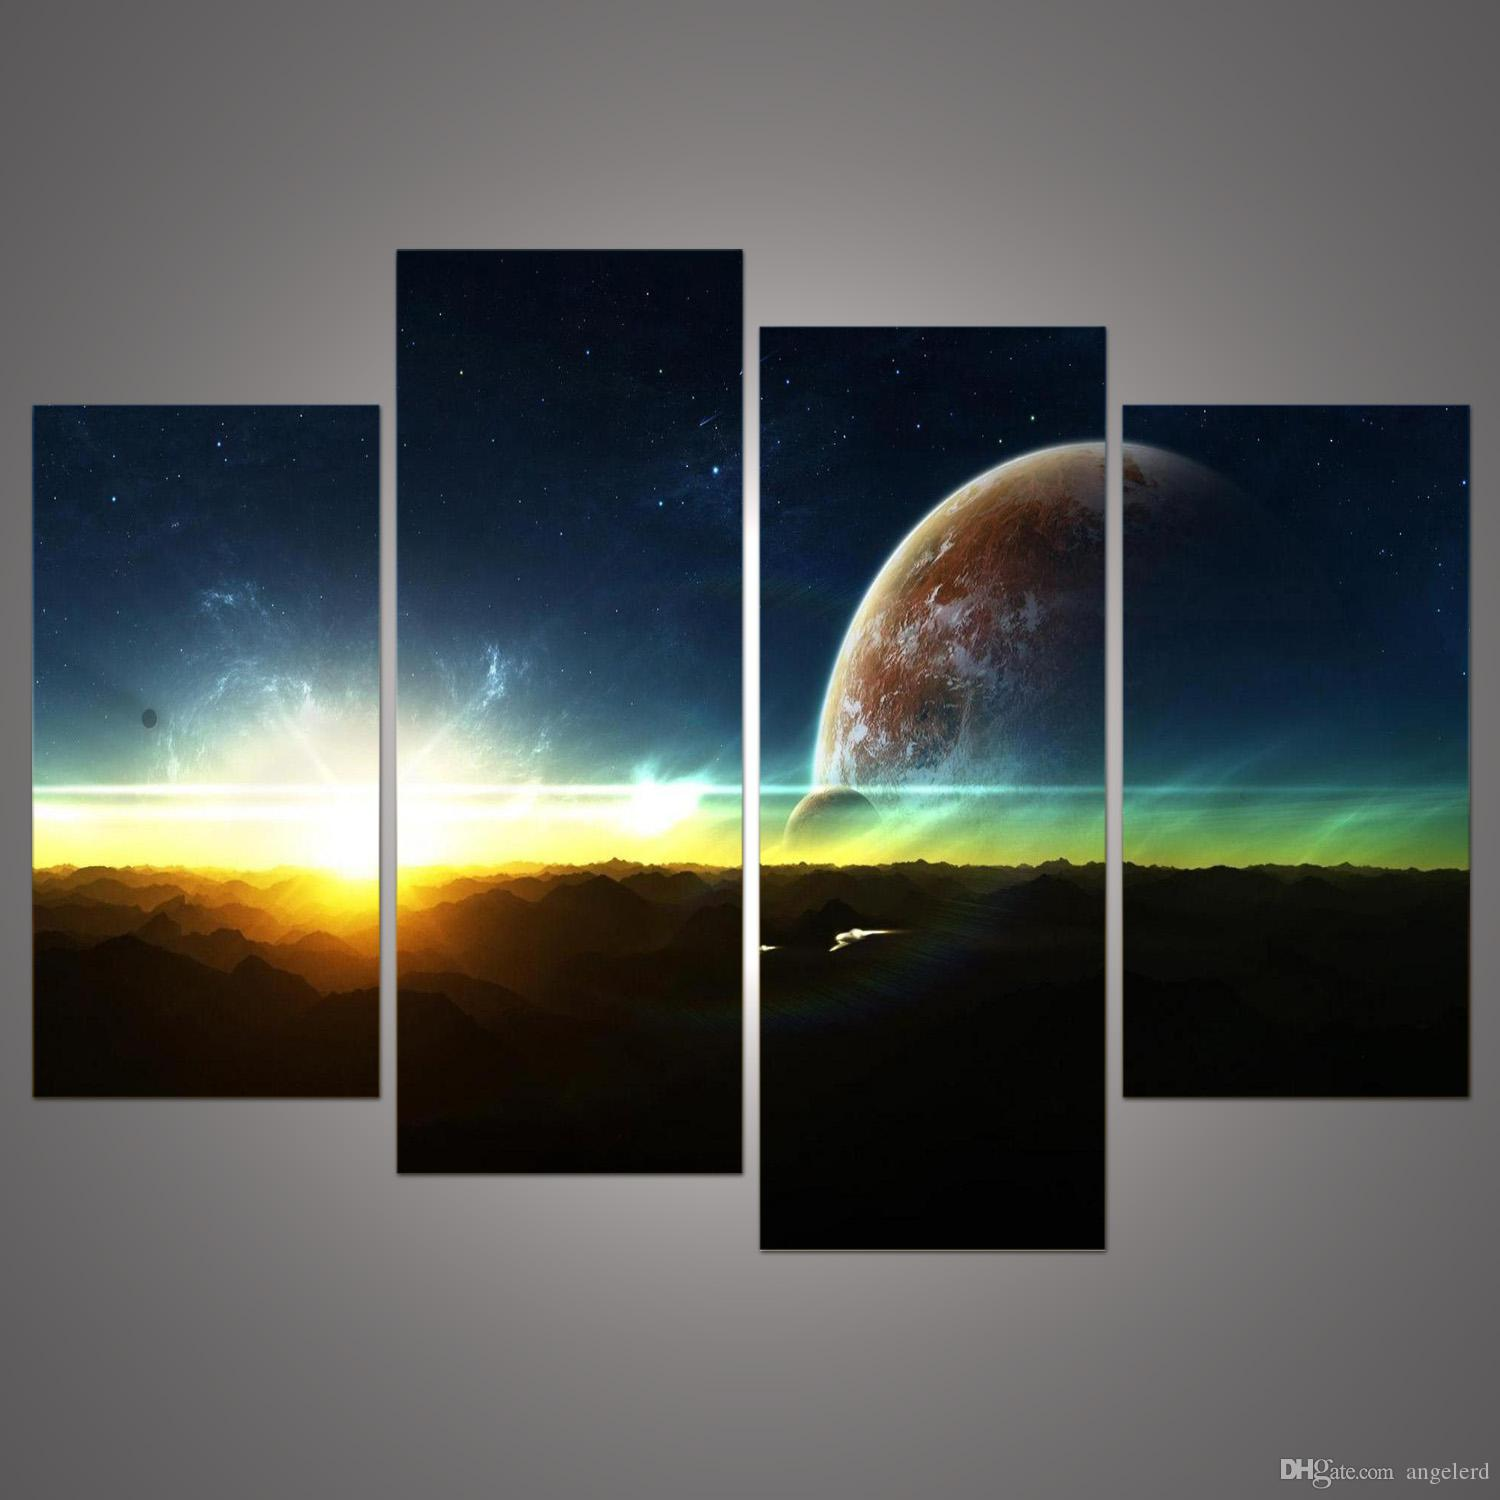 Home decor paintings - Best 4 Panel Modern Sunrise Space Universe Picture Painting Cuadros Wall Decor Canvas Art Home Decor For Living Room H 052 Under 9 08 Dhgate Com